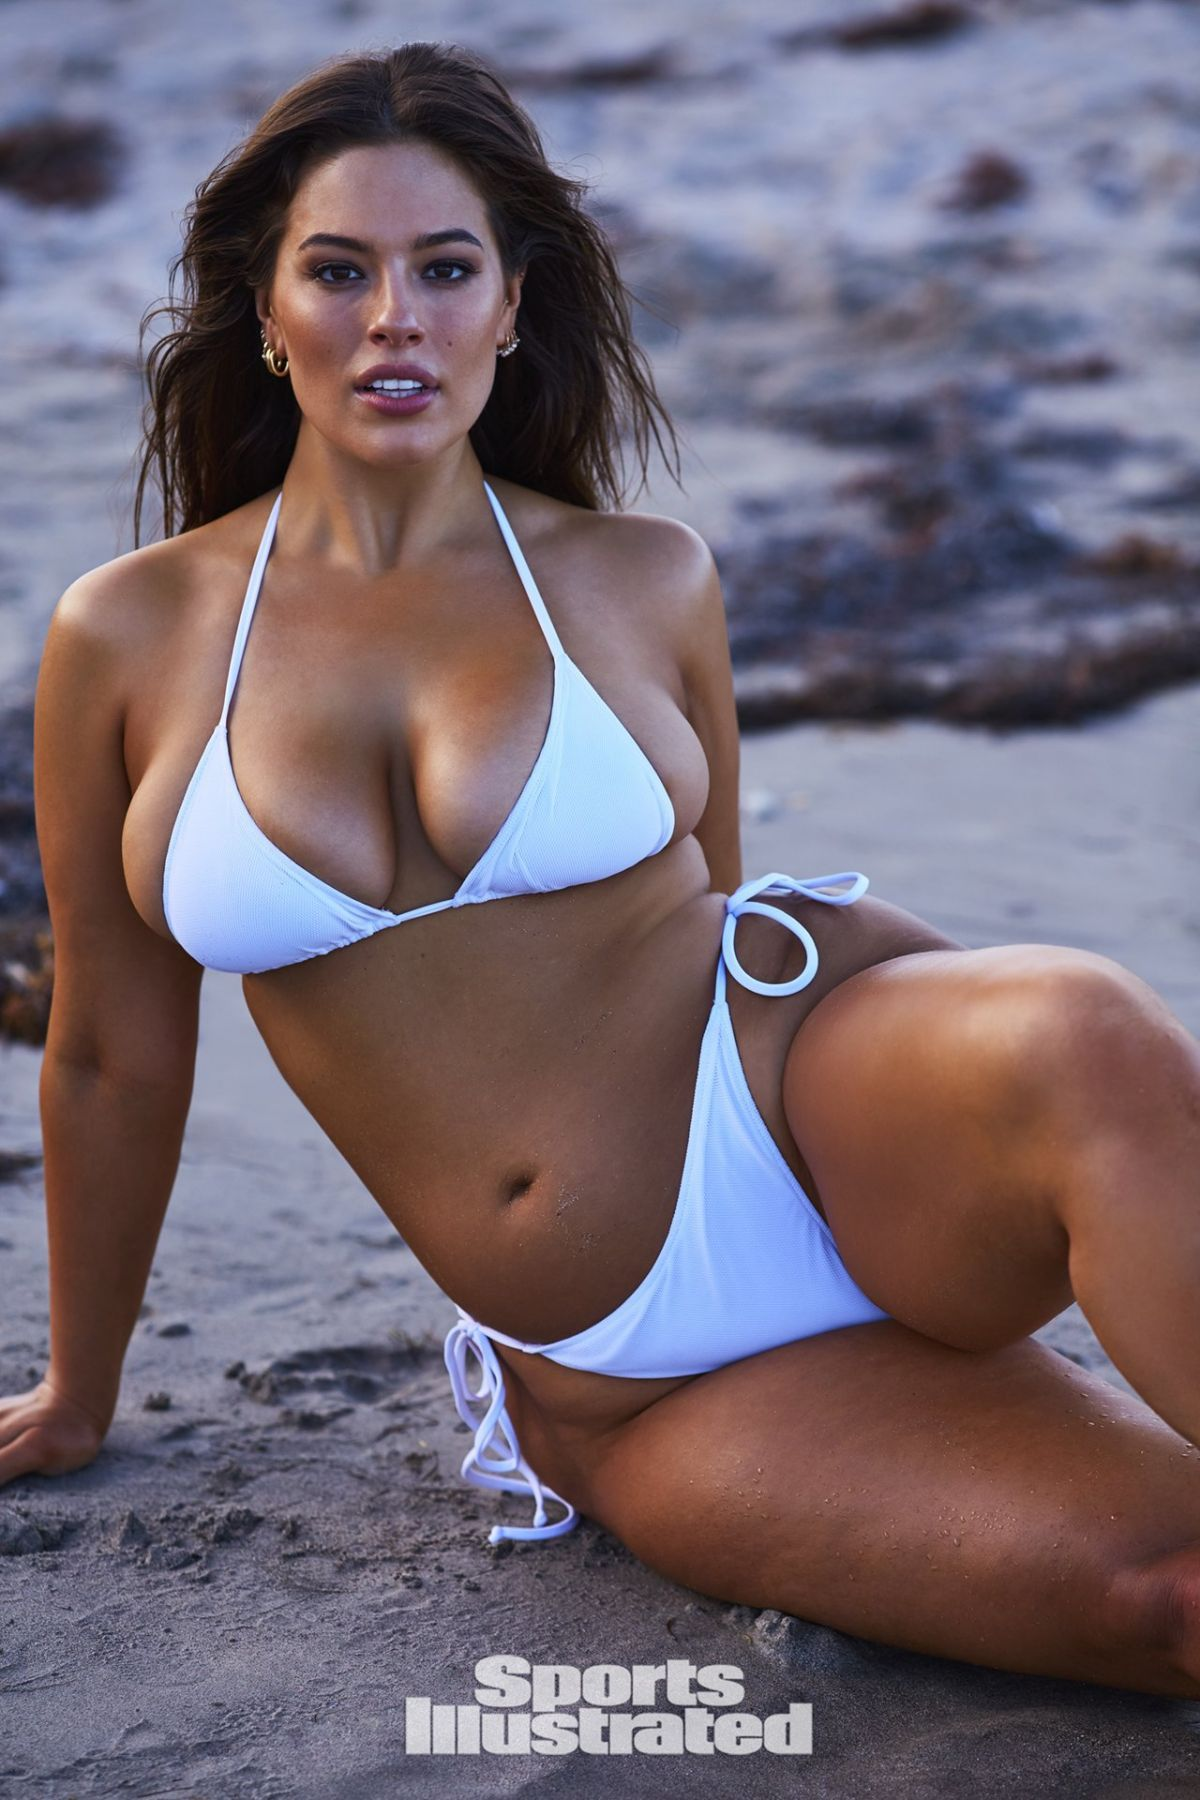 sports illustrated   ASHLEY GRAHAM in Sports Illustrated Swimsuit 2018  Issue . 7574fbcf2a3